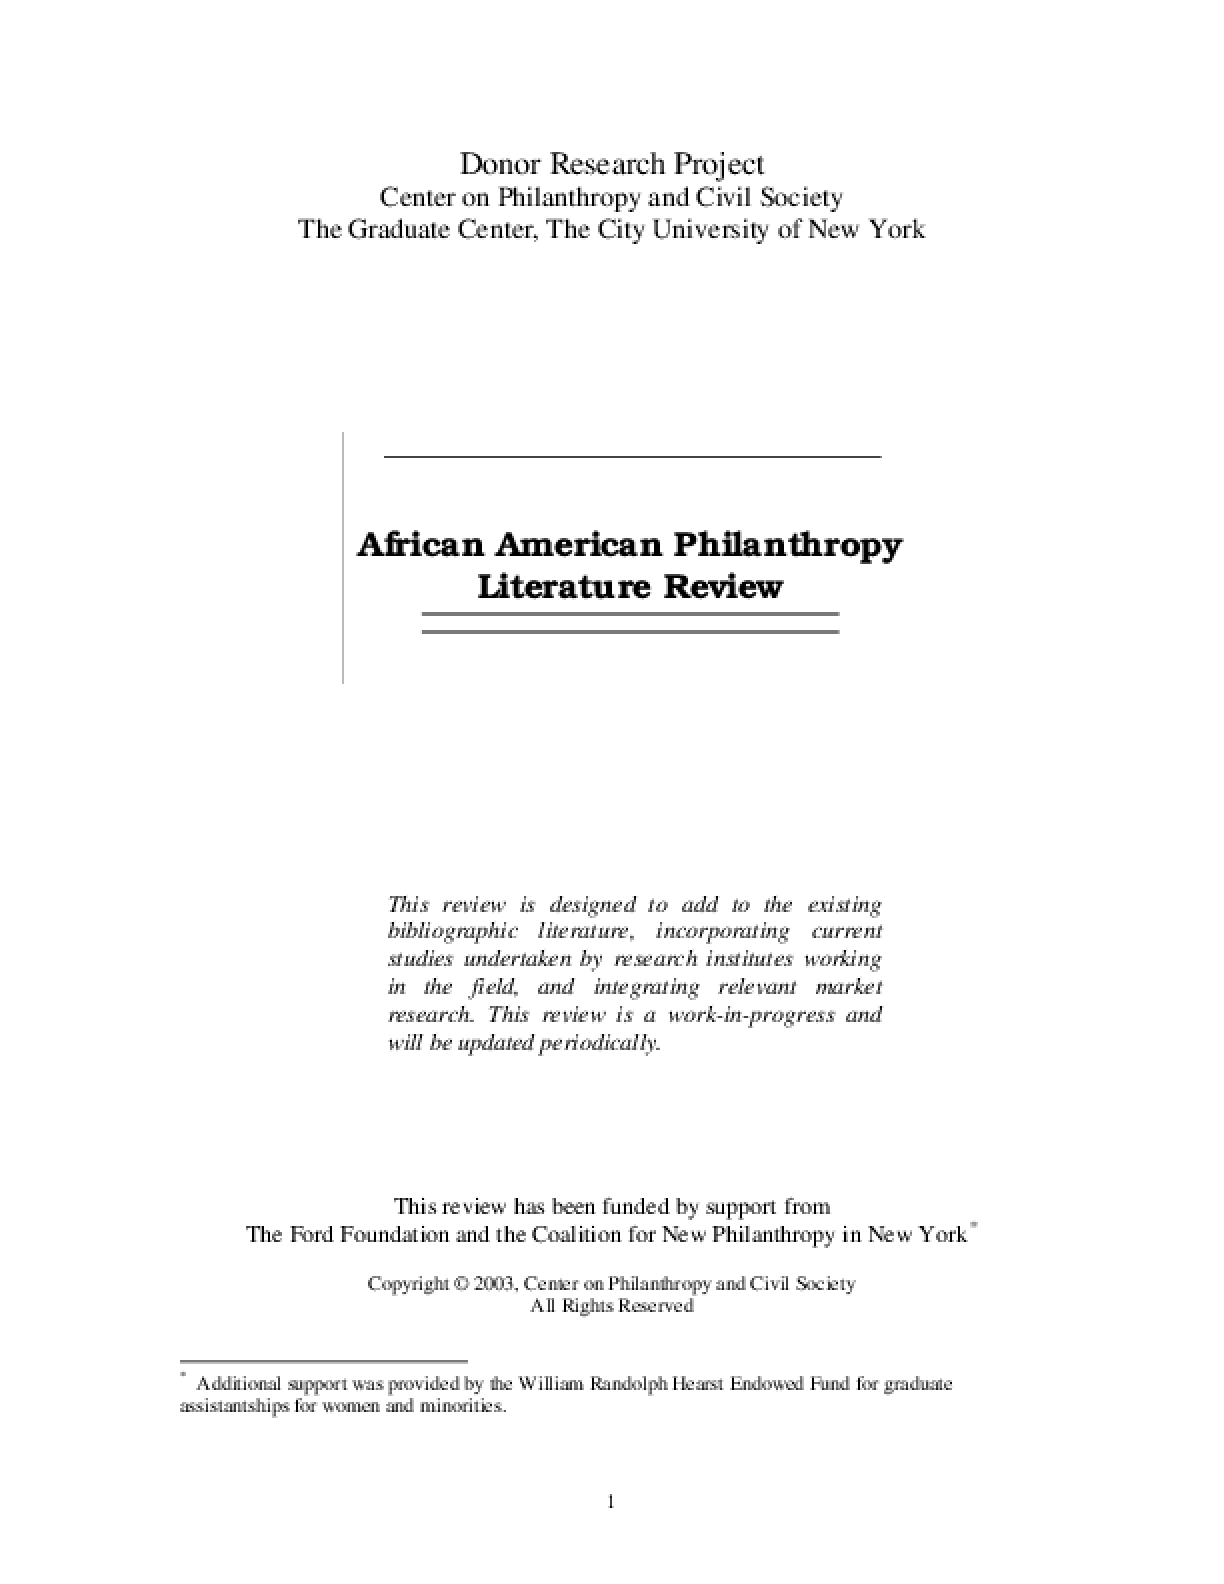 African American Philanthropy Literature Review